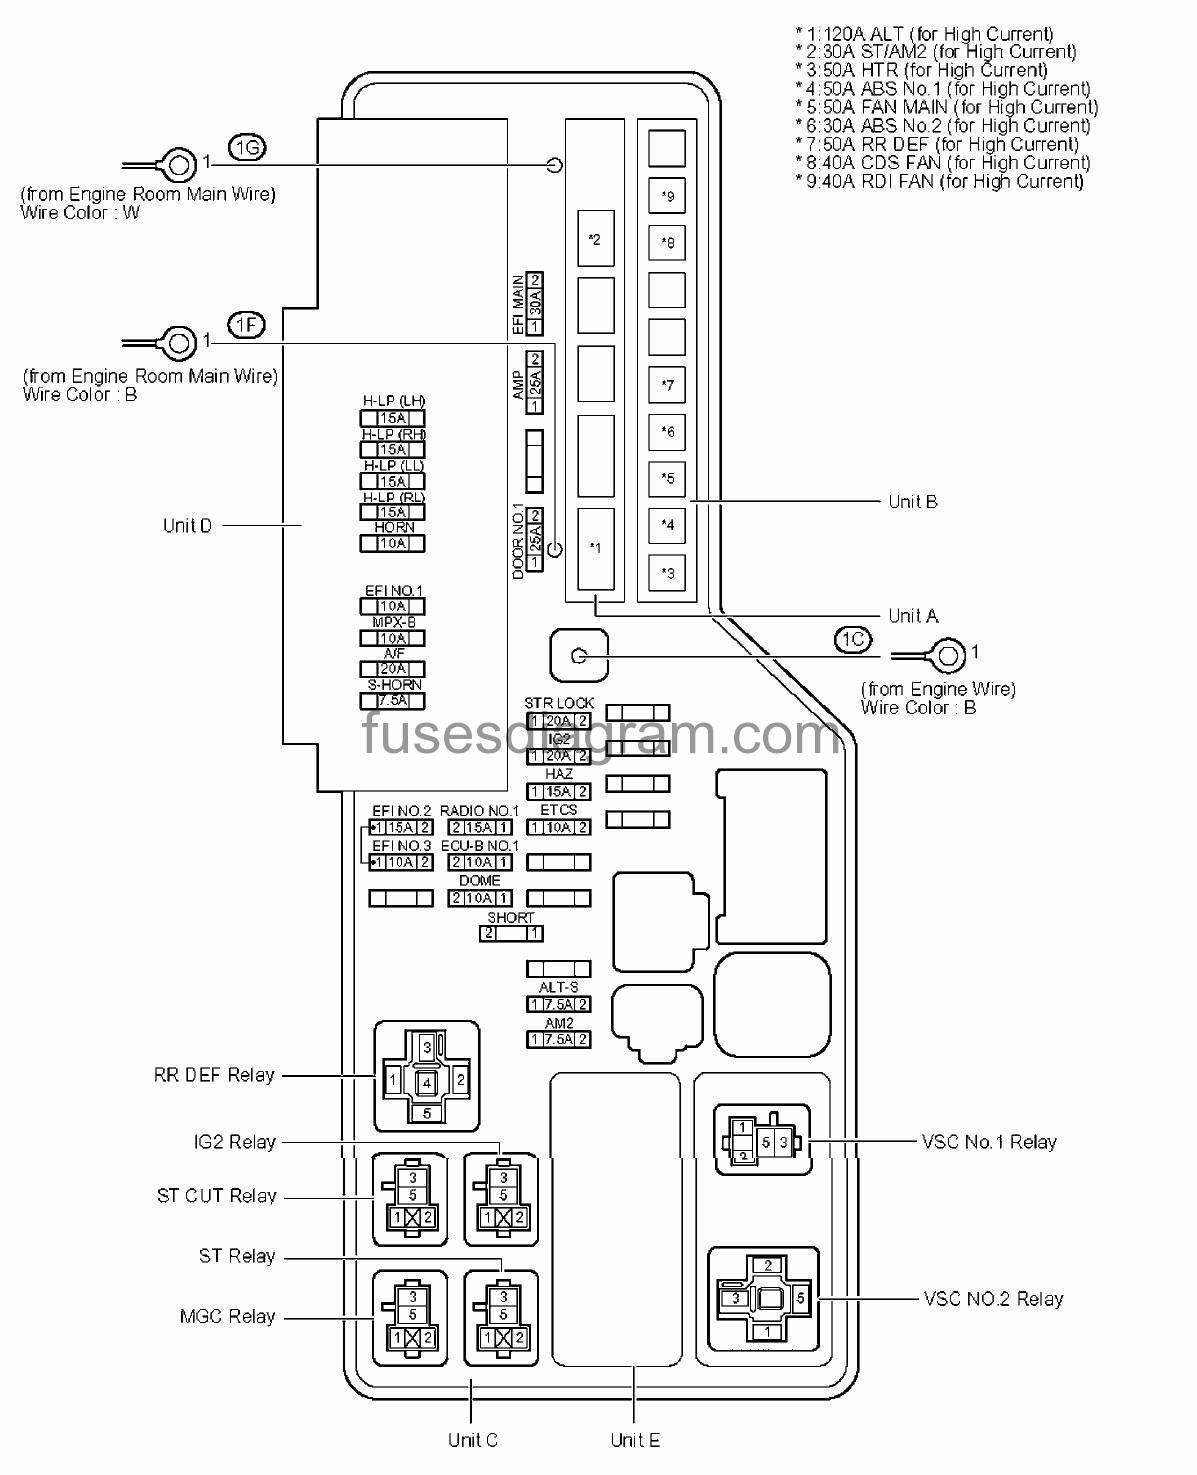 hight resolution of 2002 eclipse fuse box layout wiring library2002 eclipse fuse box layout